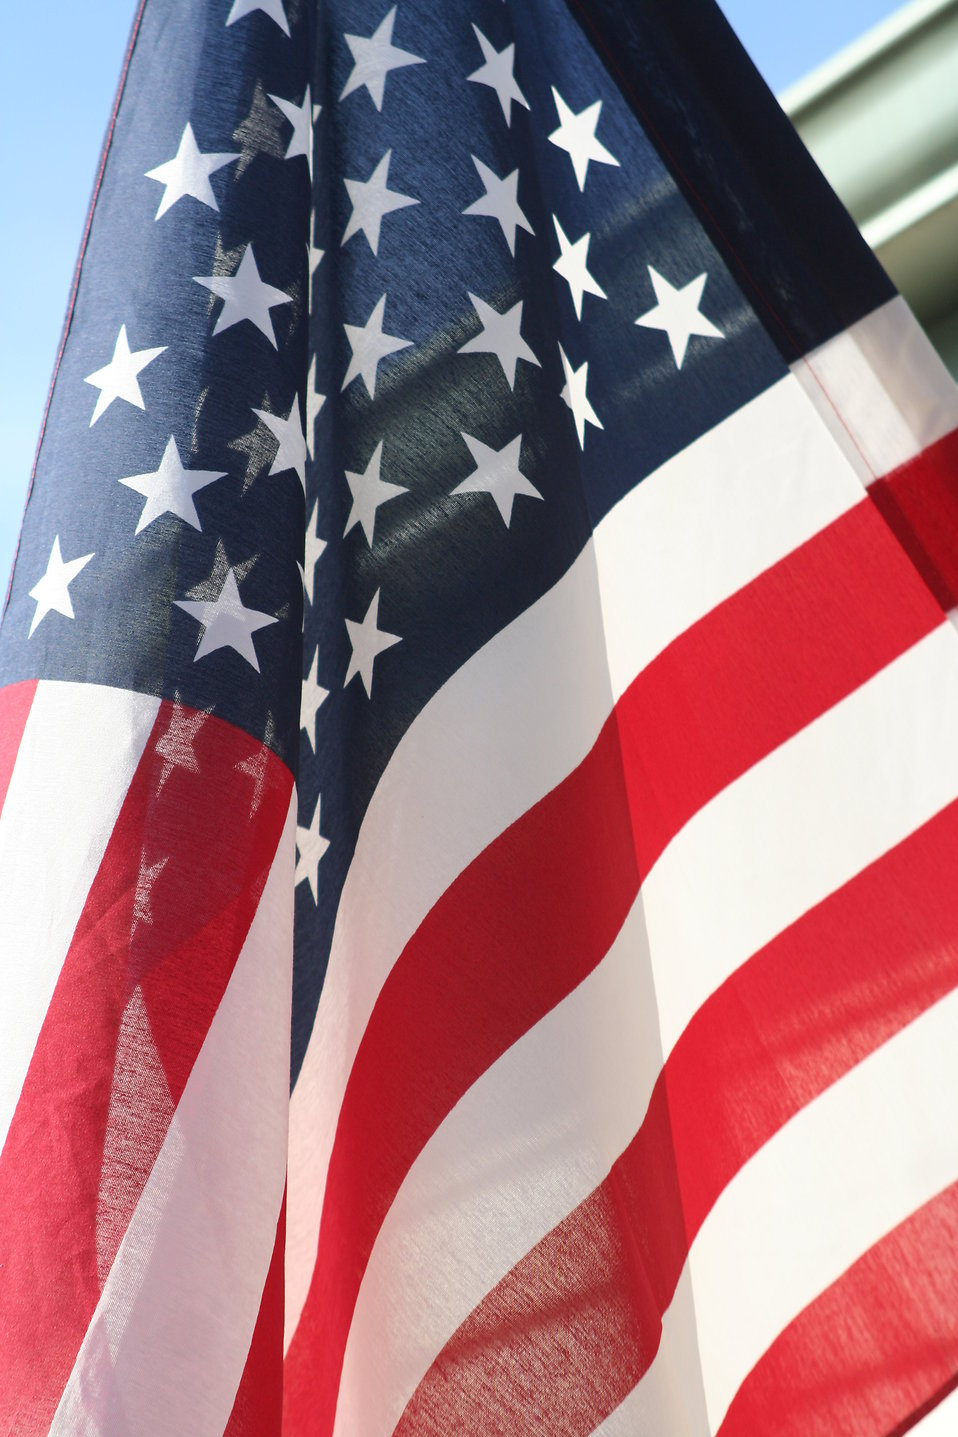 American flag close-up : Free Stock Photo